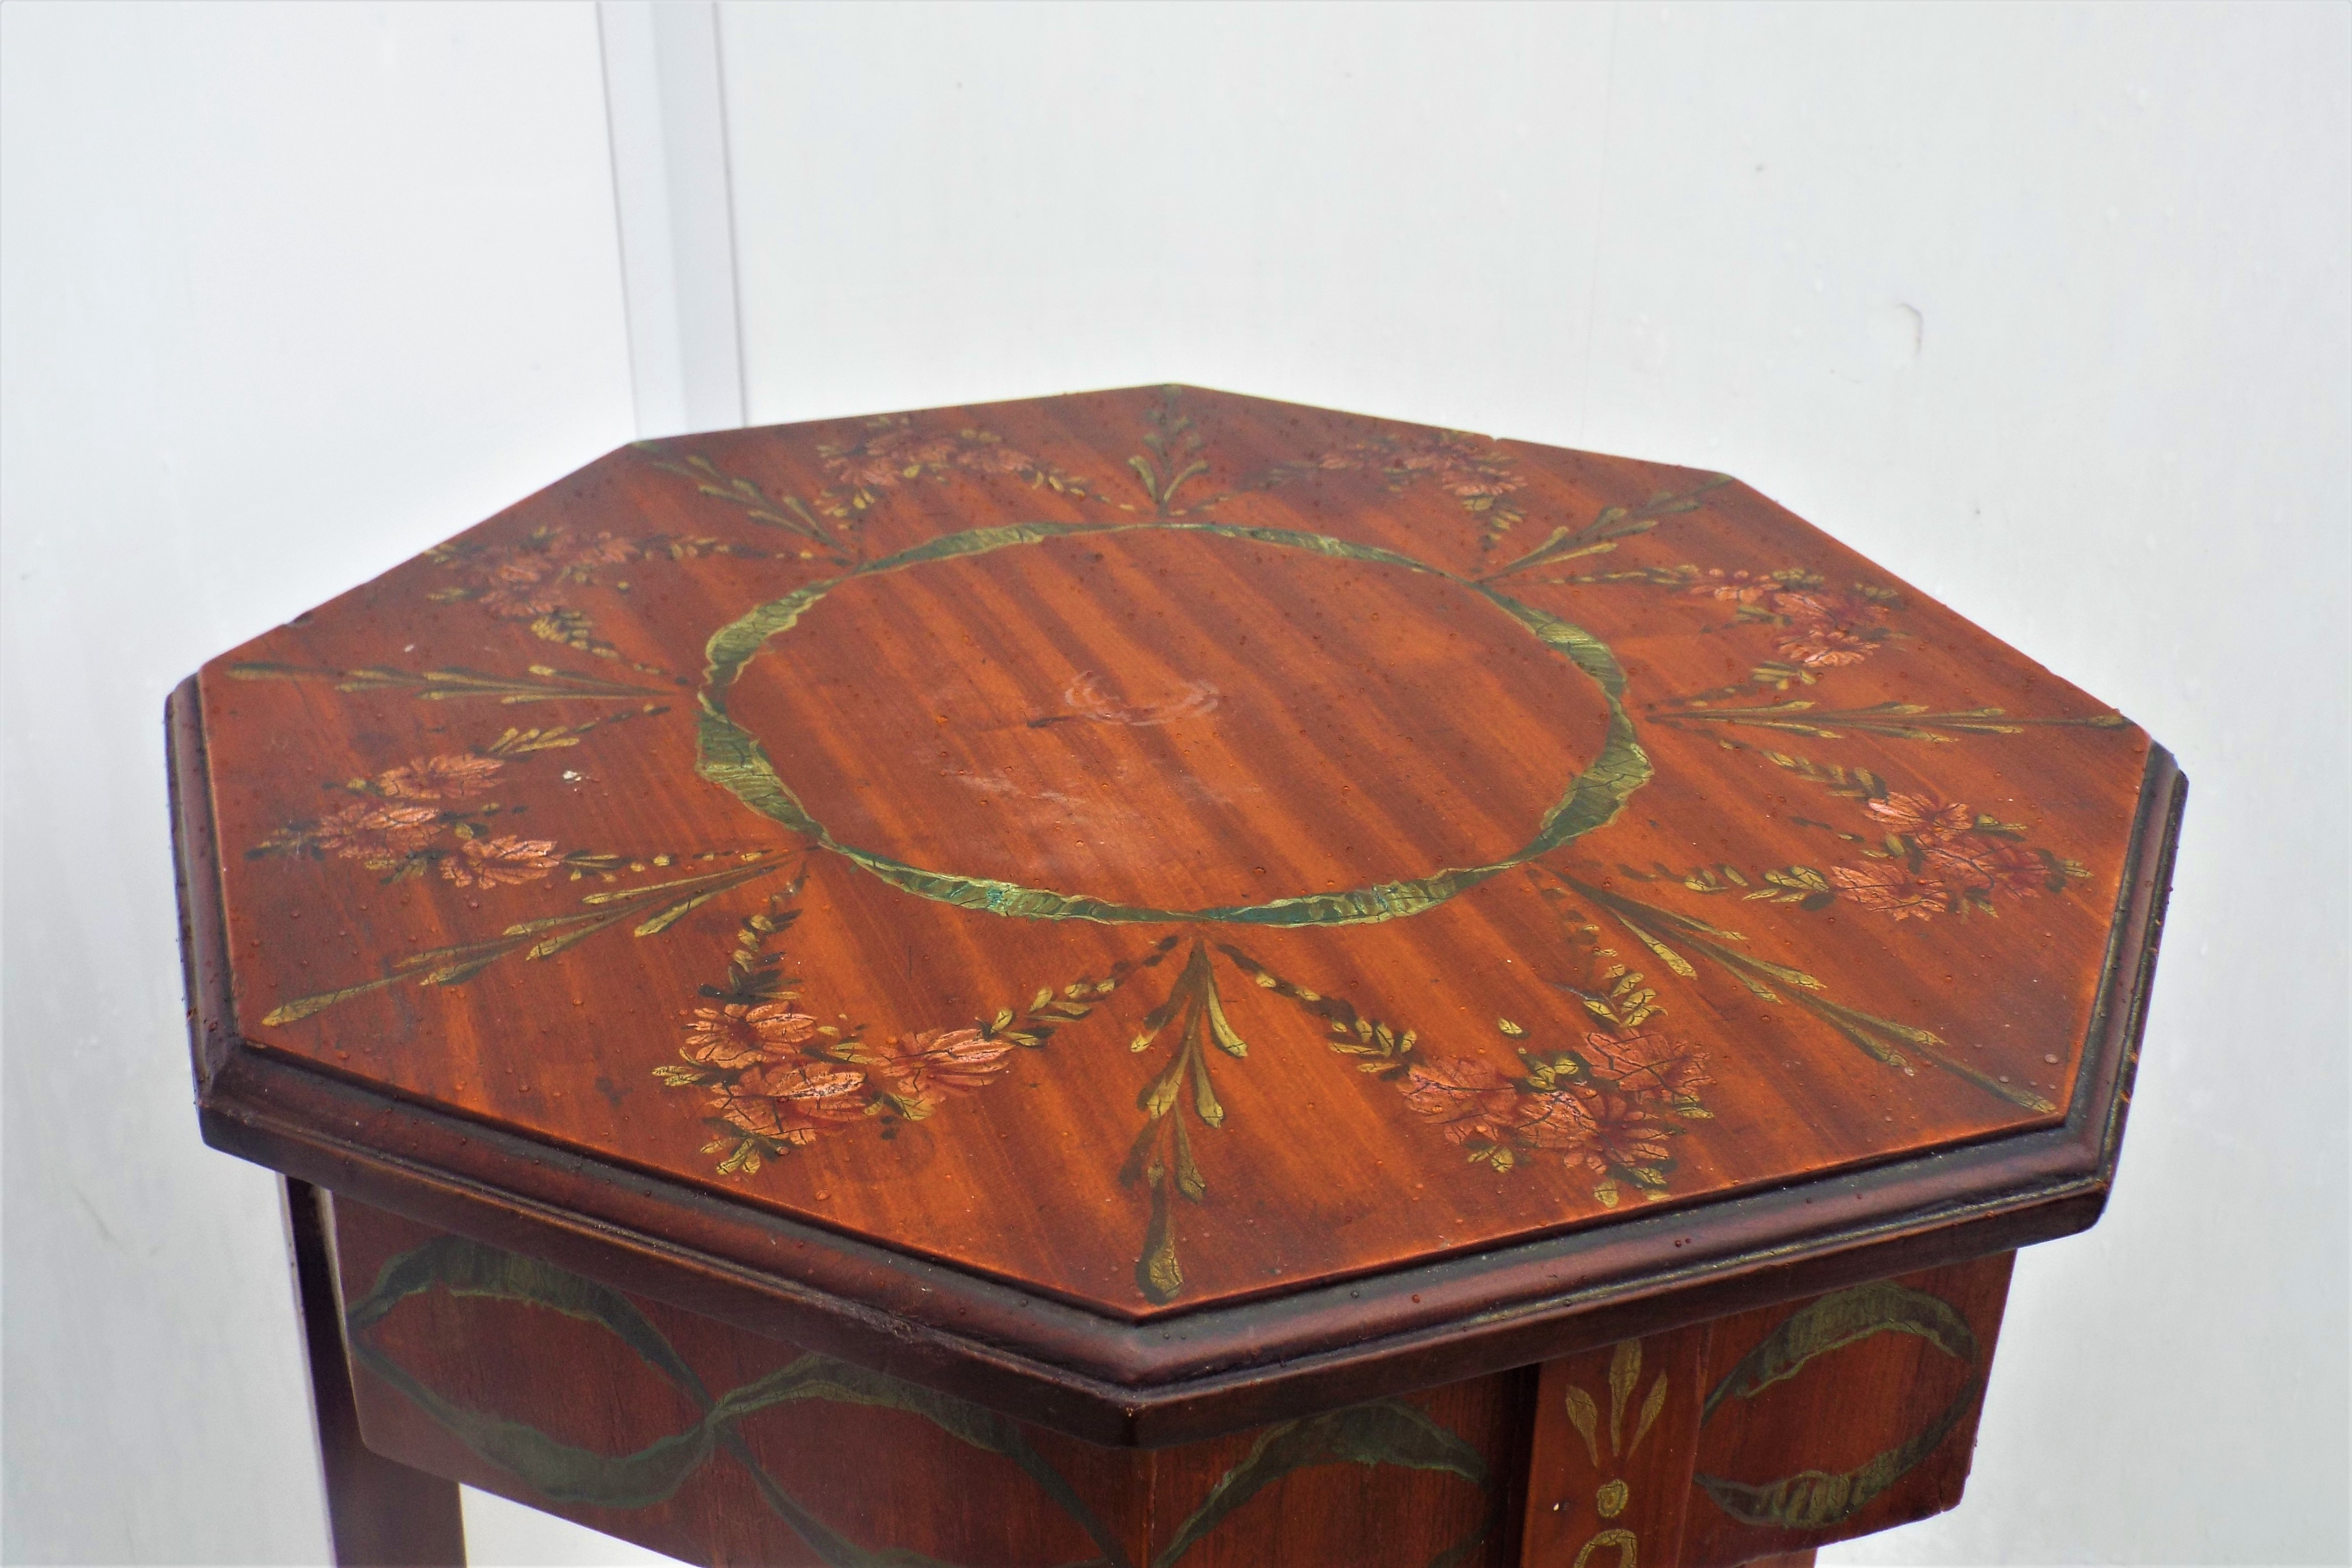 saitin wood hand painted table for sale classifieds. Black Bedroom Furniture Sets. Home Design Ideas